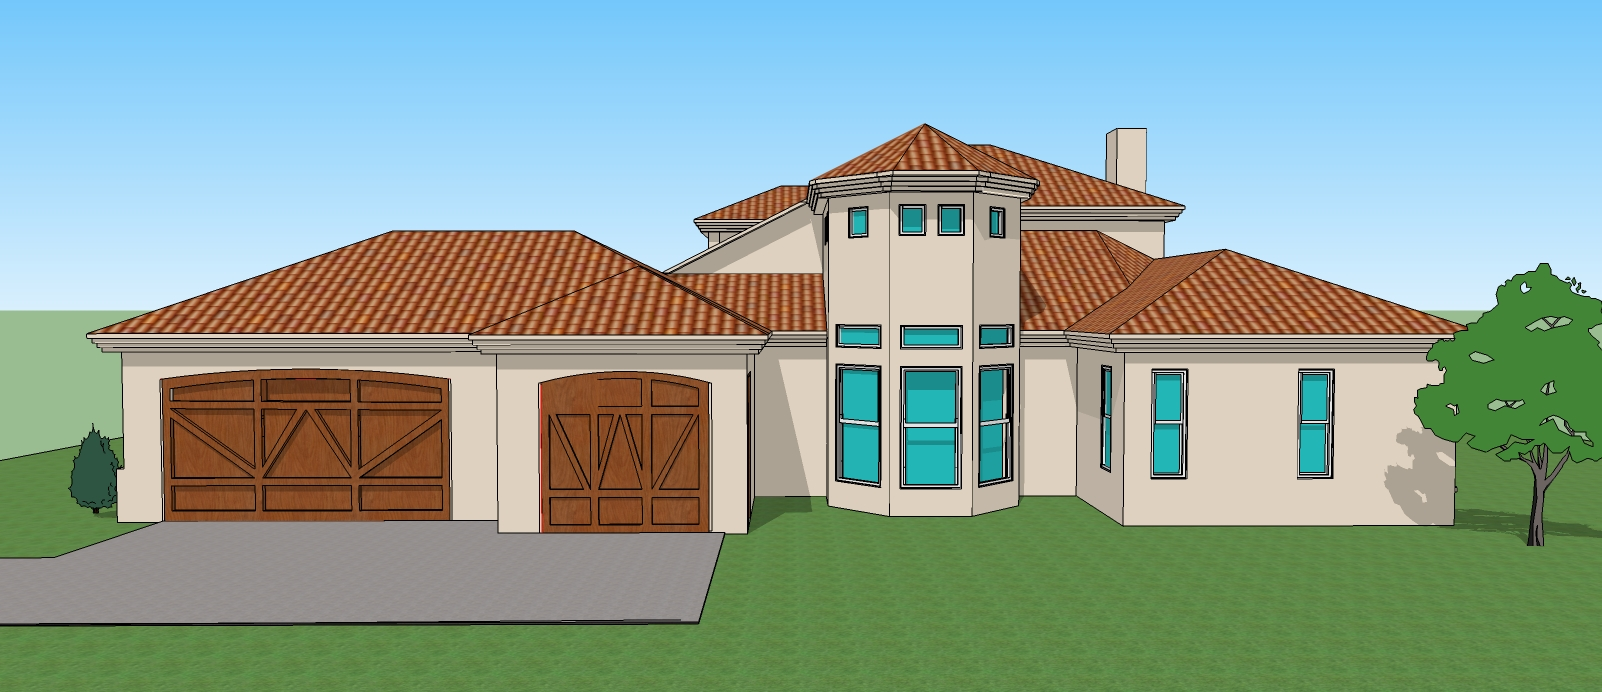 pics photos 3d house and design drawings architectural plans 5 tips on how to create your own